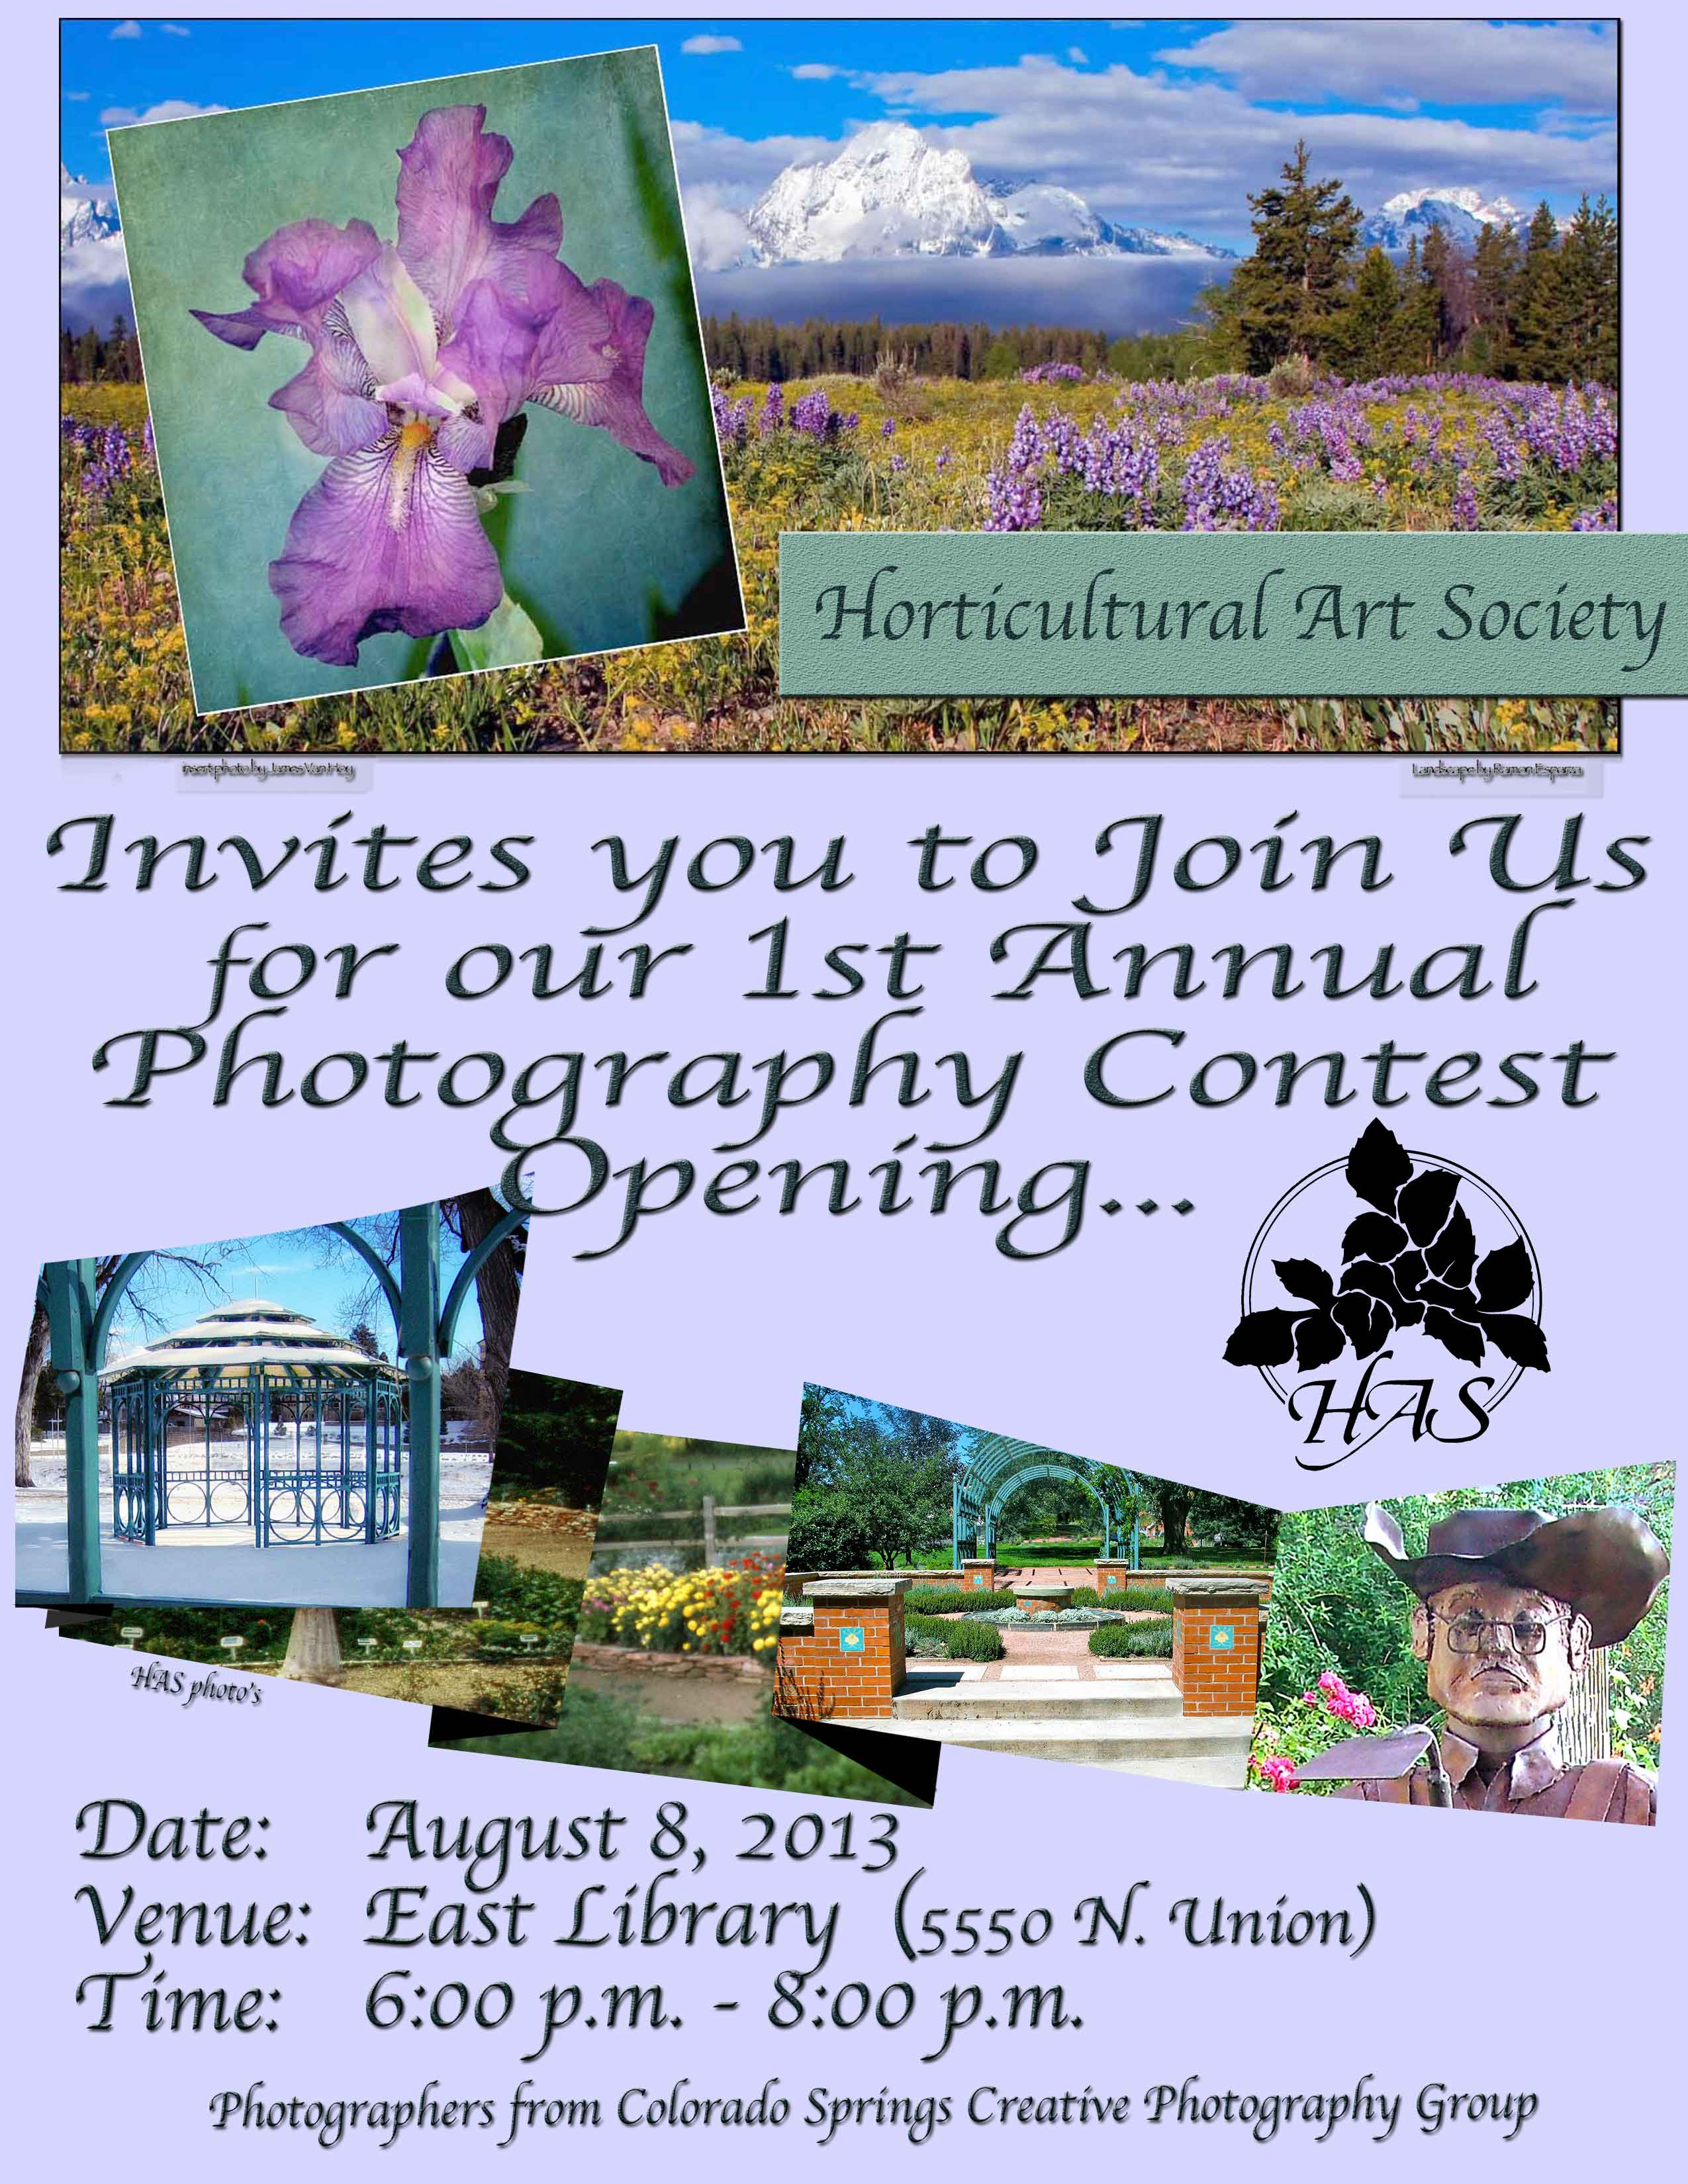 Horticultural Art Society Of Colorado Springs